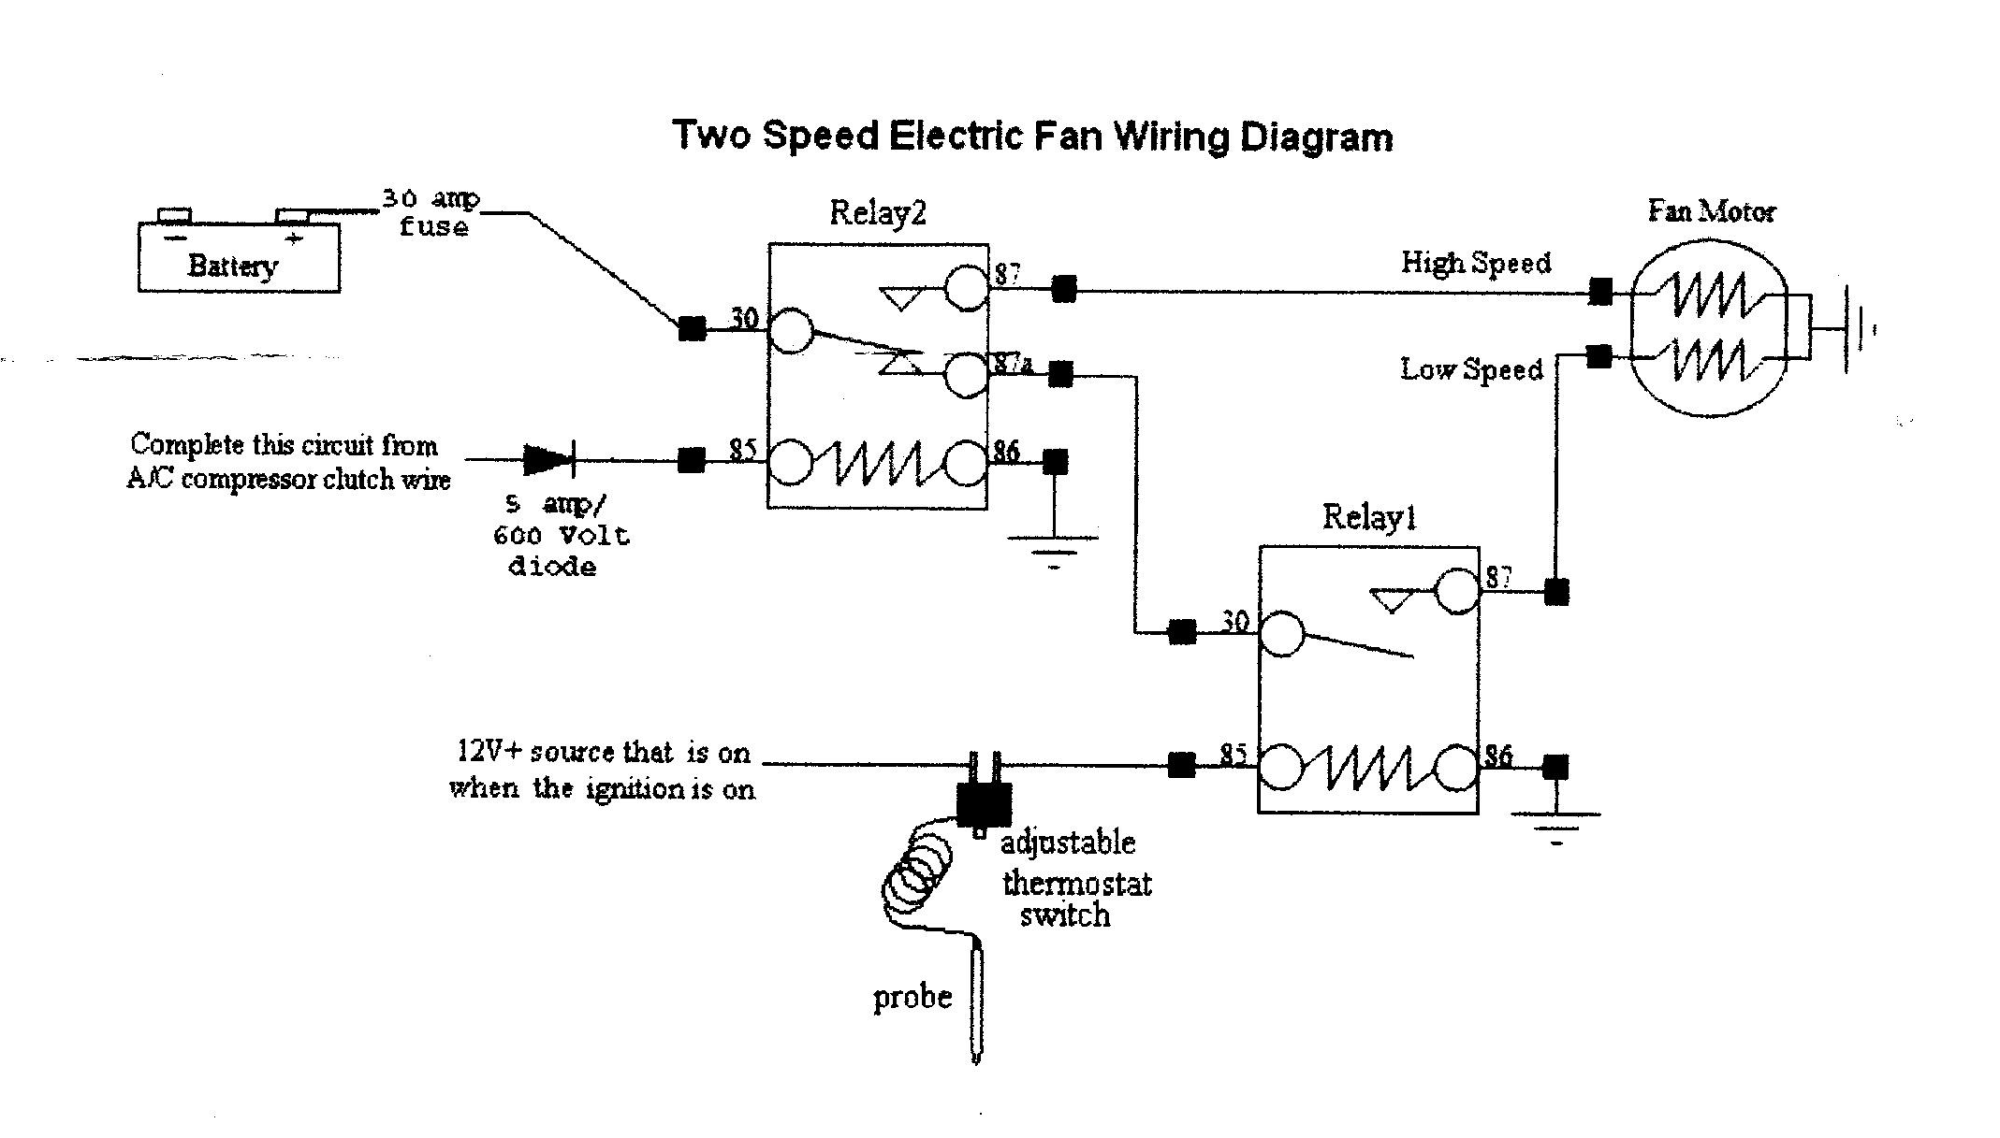 hight resolution of electric radiator fan wiring diagram 1995 mercury villager wiring1995 mercury villager wiring diagram wiring diagrams terms